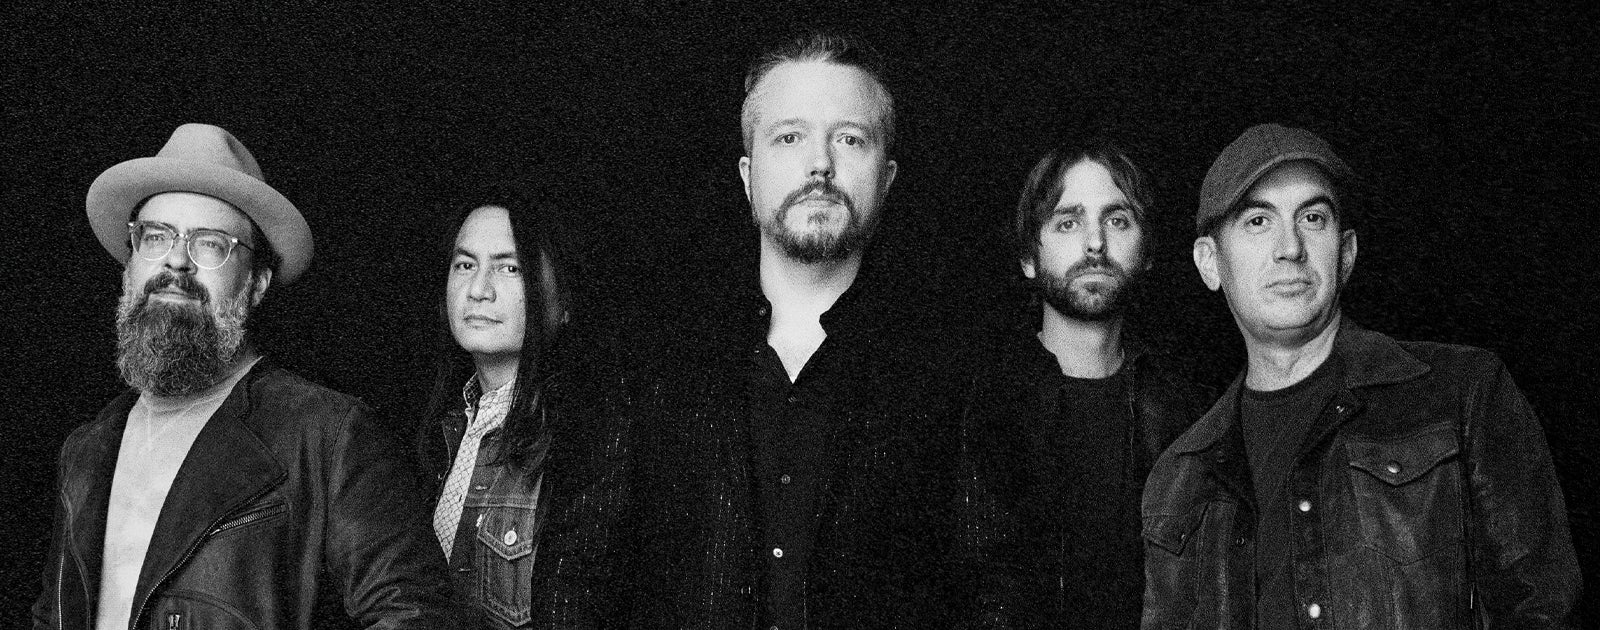 Jason Isbell and The 400 Unit - RESCHEDULED